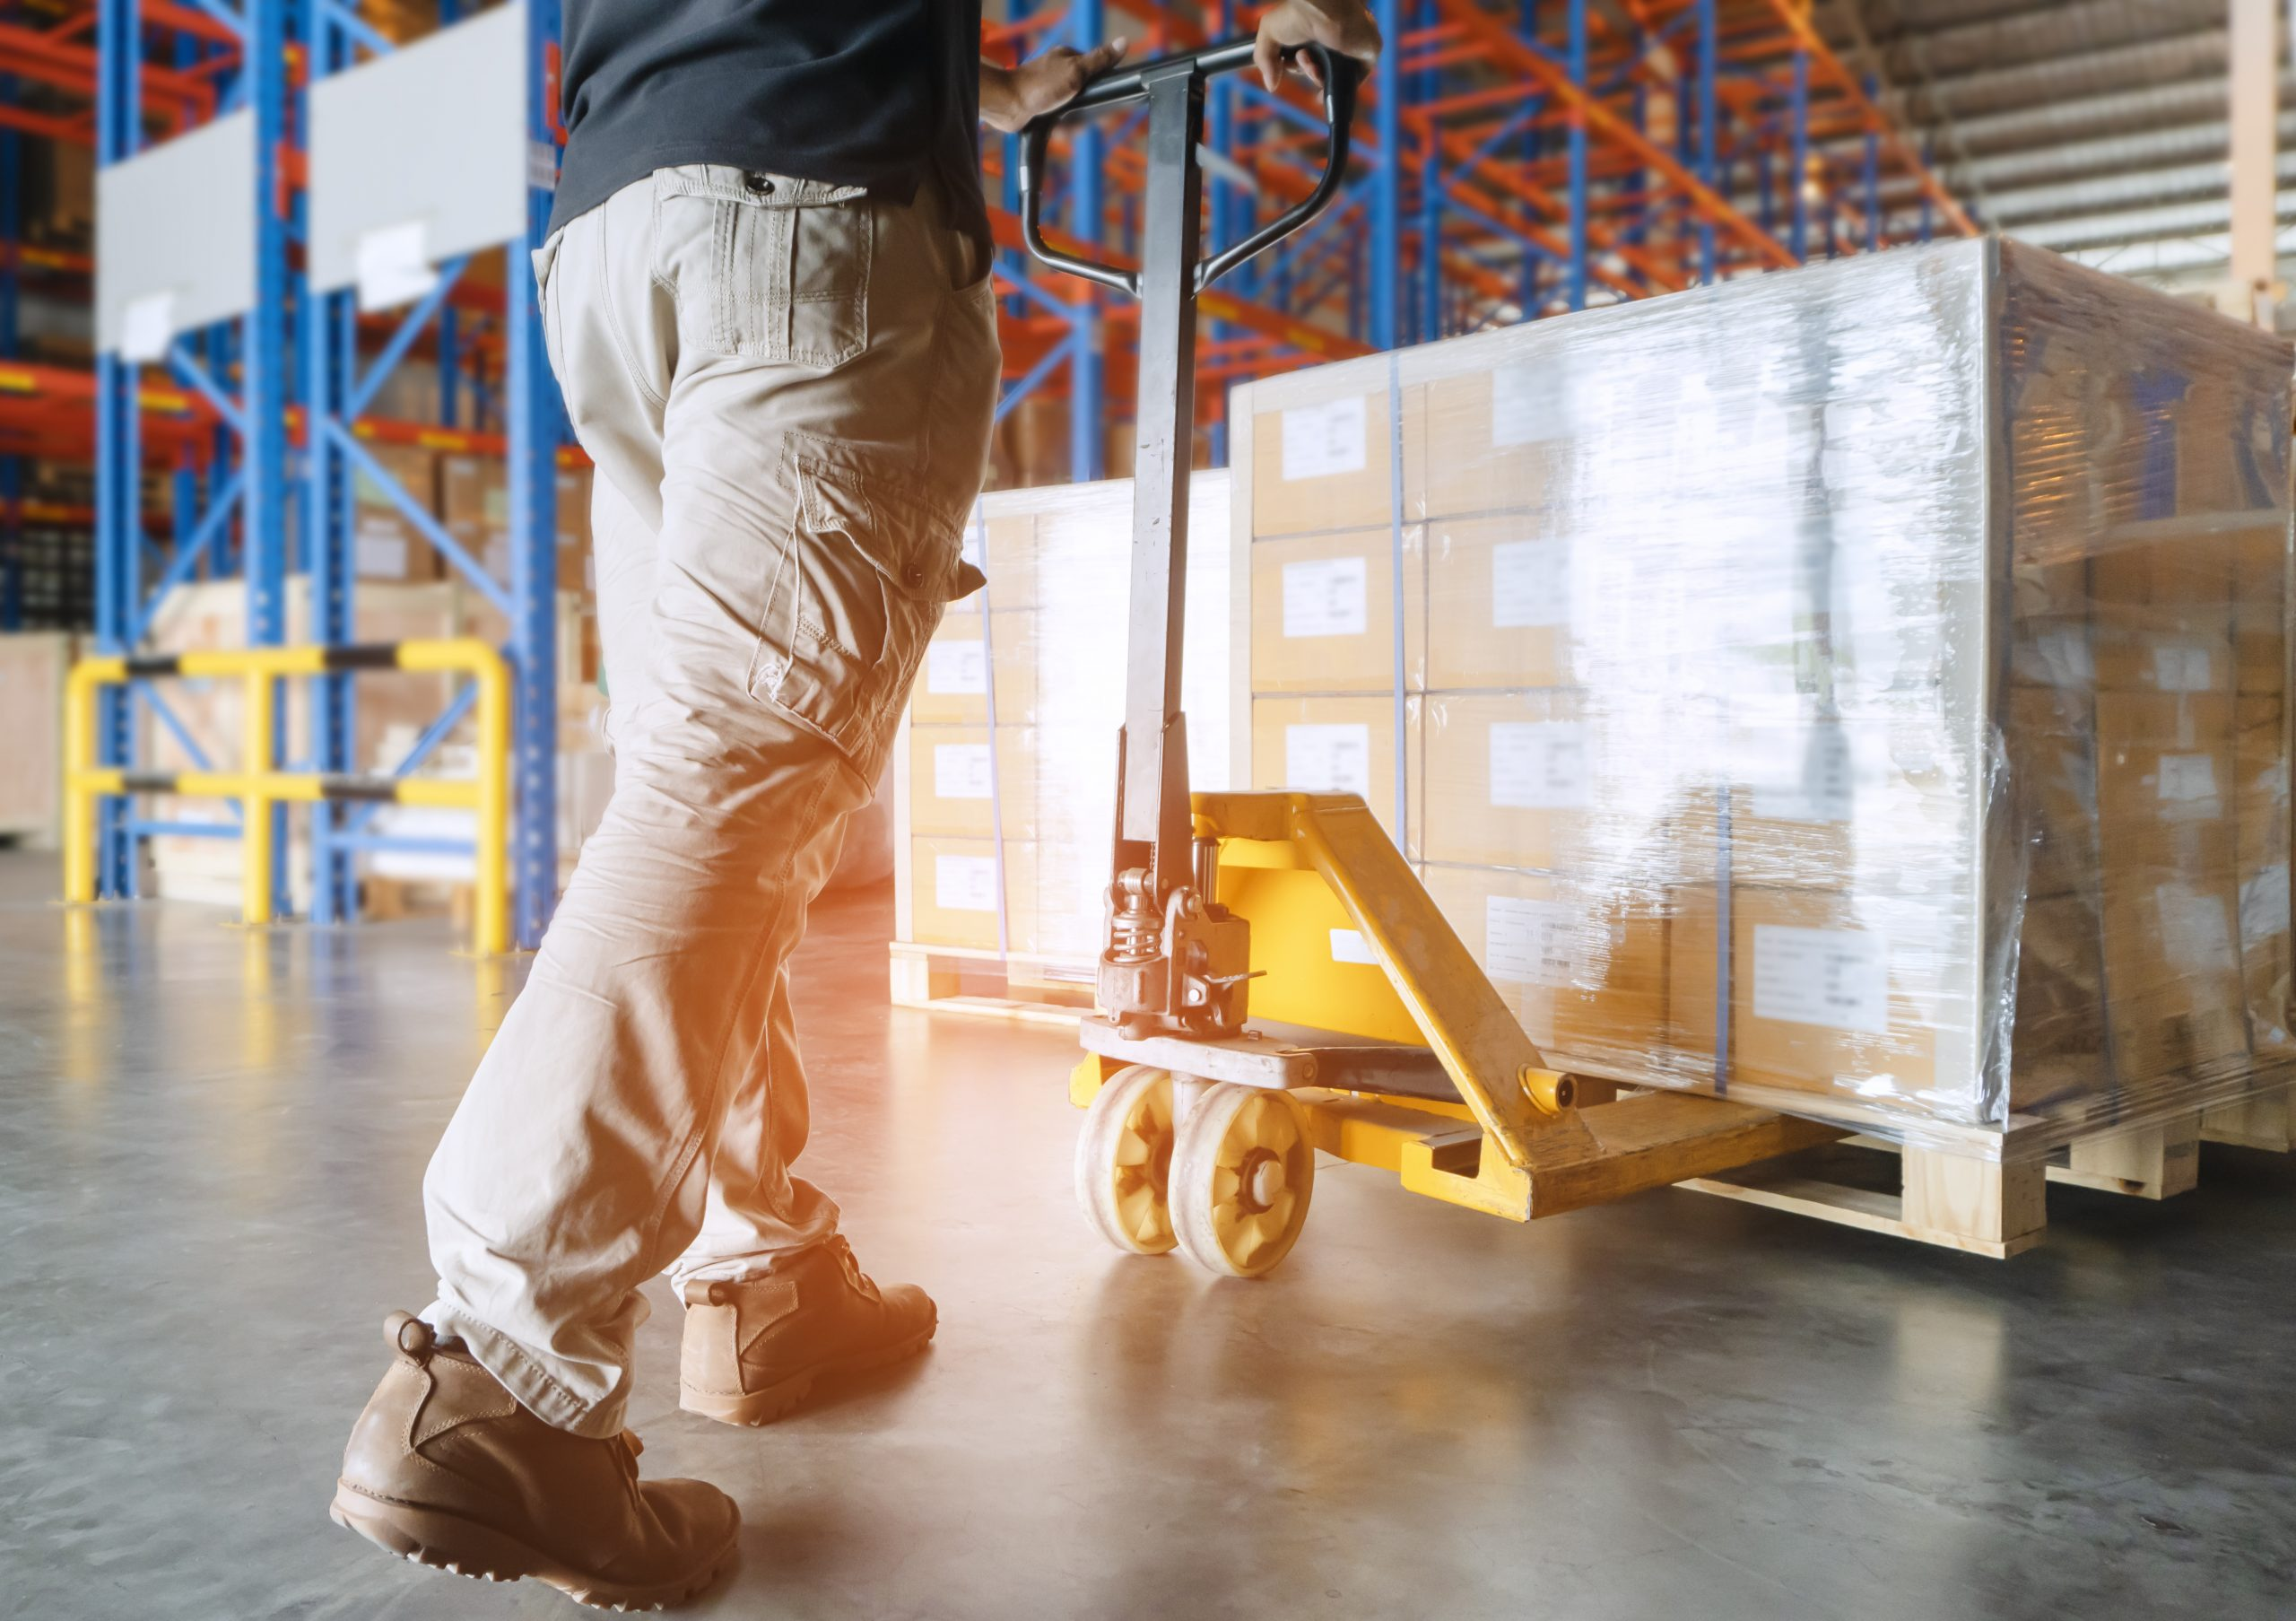 Beyond LTL: Faster Solutions for Palletized Freight